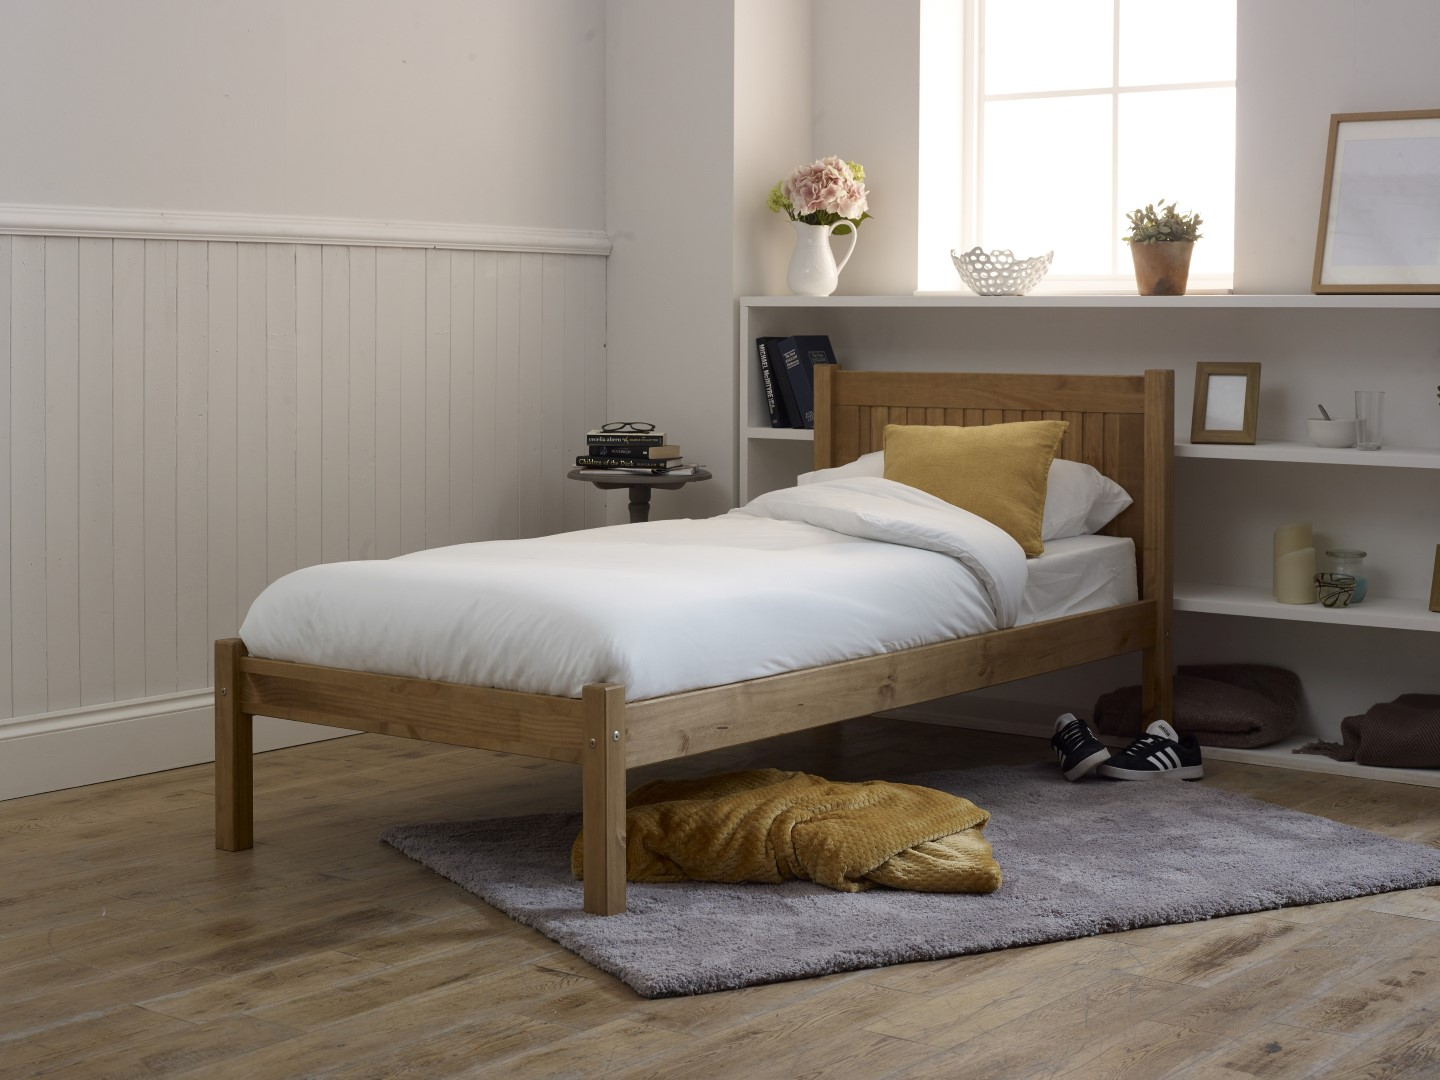 Limelight Capricon 3ft Single Pine Wooden Bed